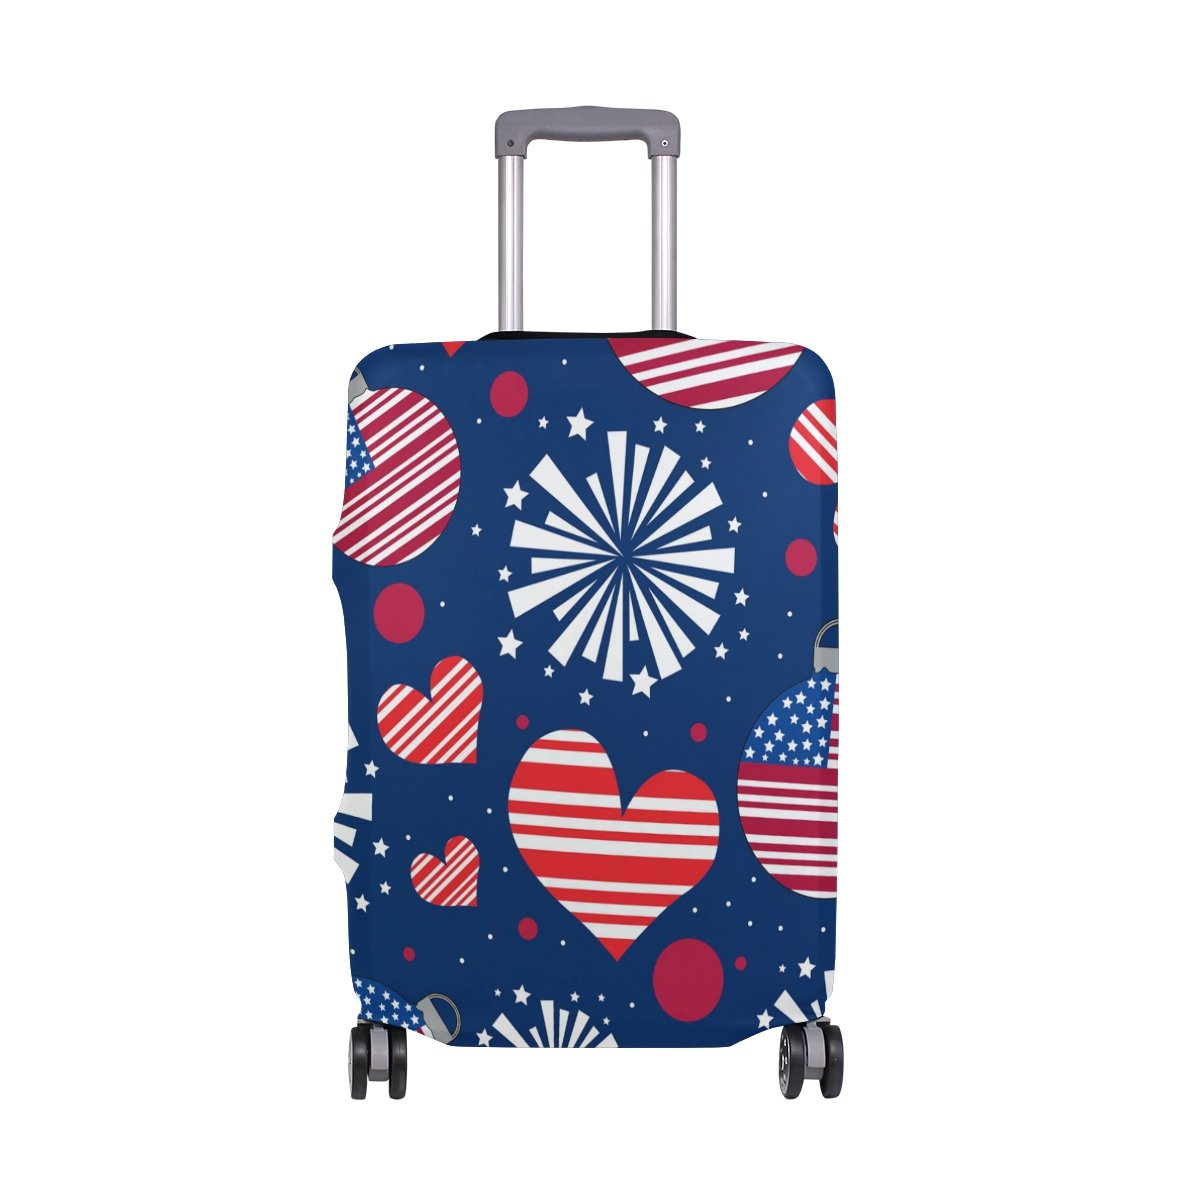 American USA Heart Love Striped Stars Red Navy Suitcase Luggage Cover Protector for Travel Kids Men Women by ALAZA (Image #1)